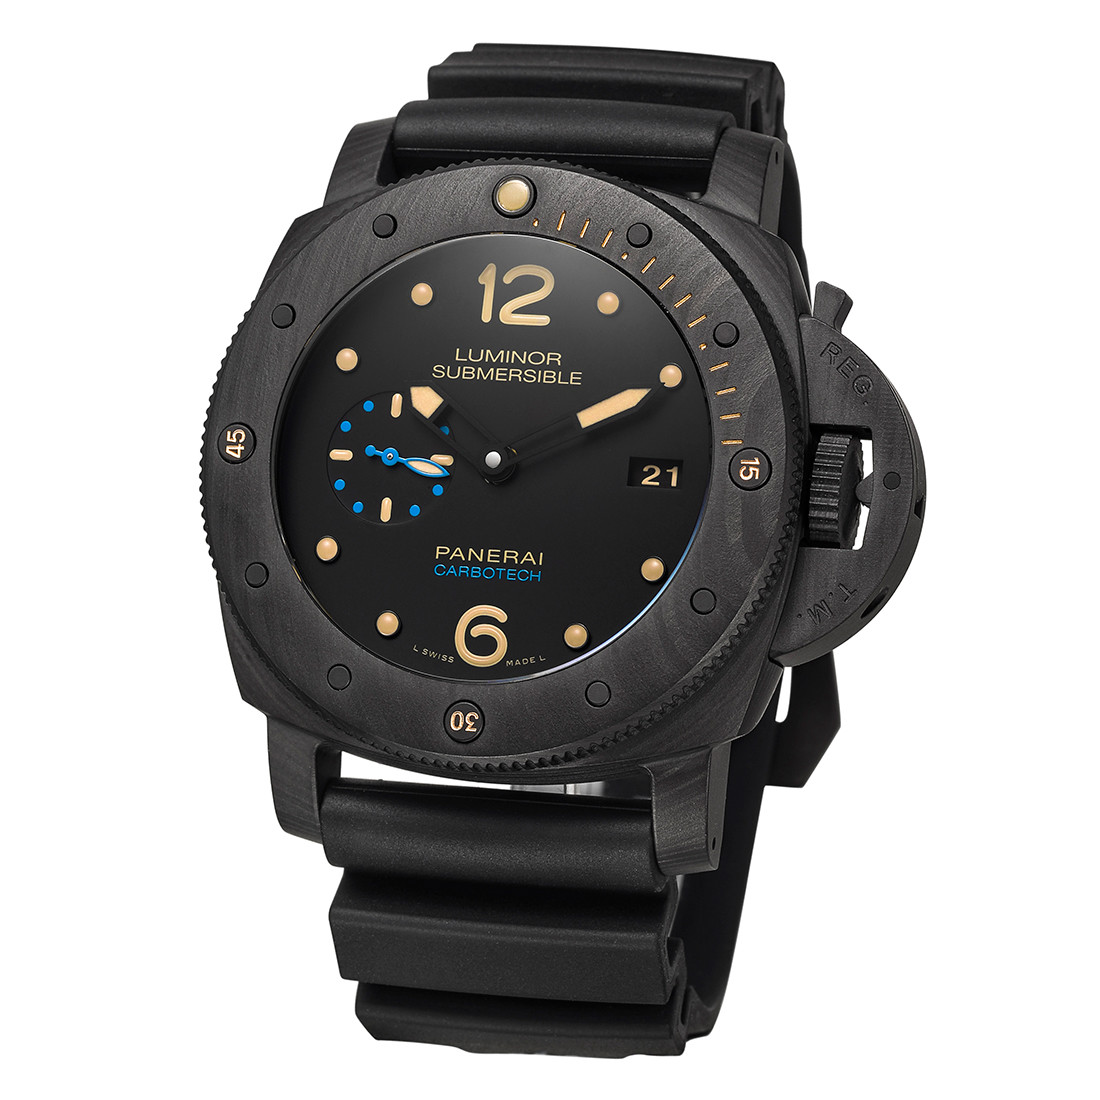 Luminor Submersible 1950 3-Days Carbotech (PAM00616)